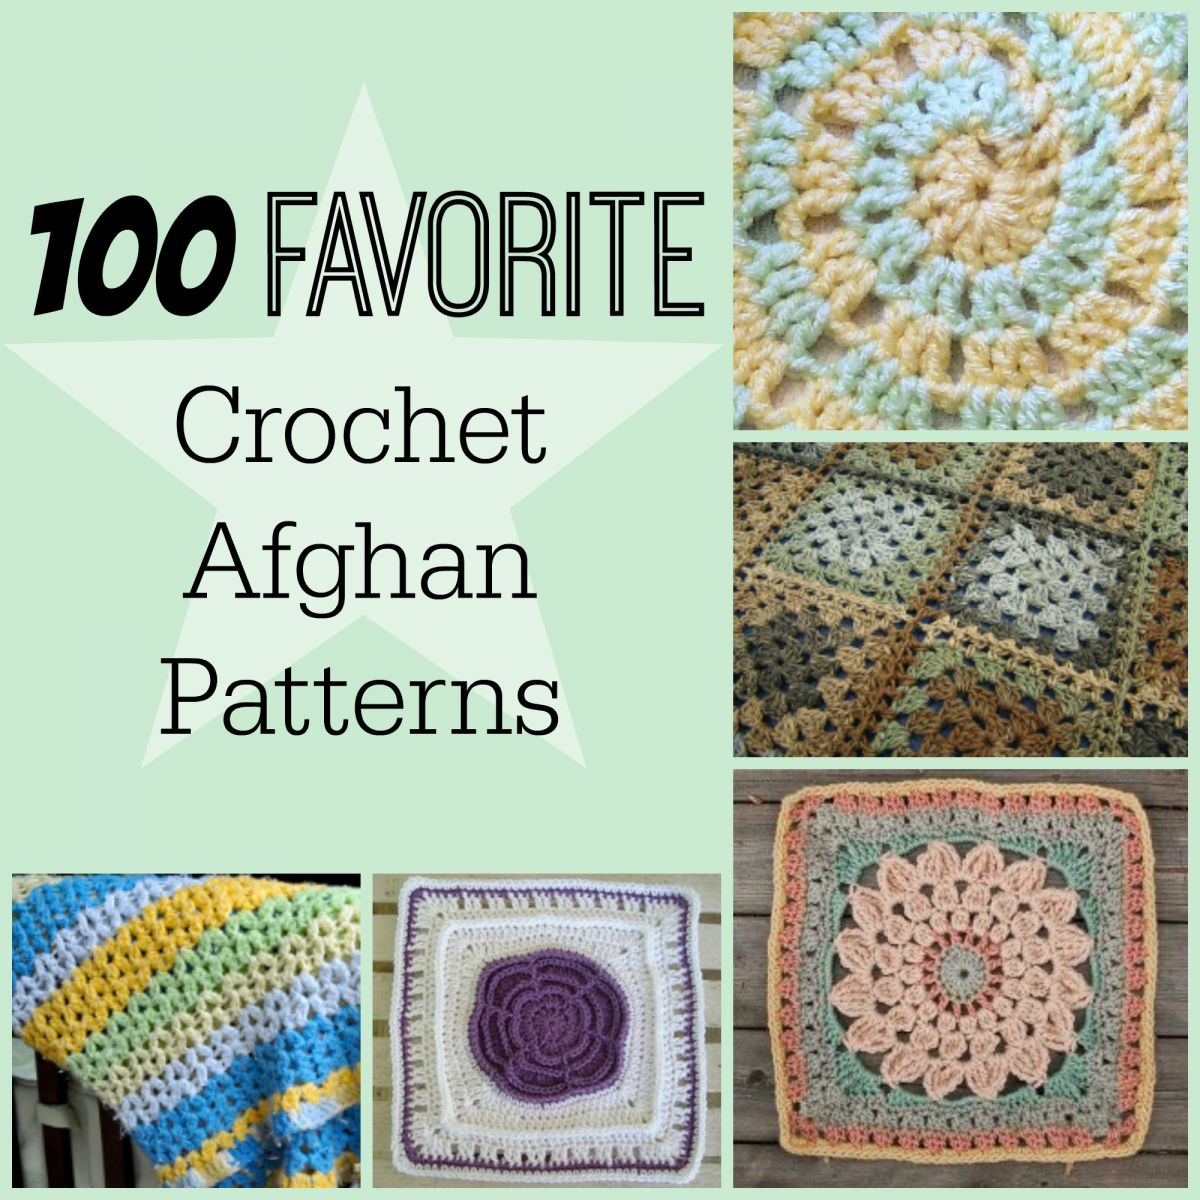 100 favorite crochet afghan patterns 100 favorite crochet afghan patterns bankloansurffo Images